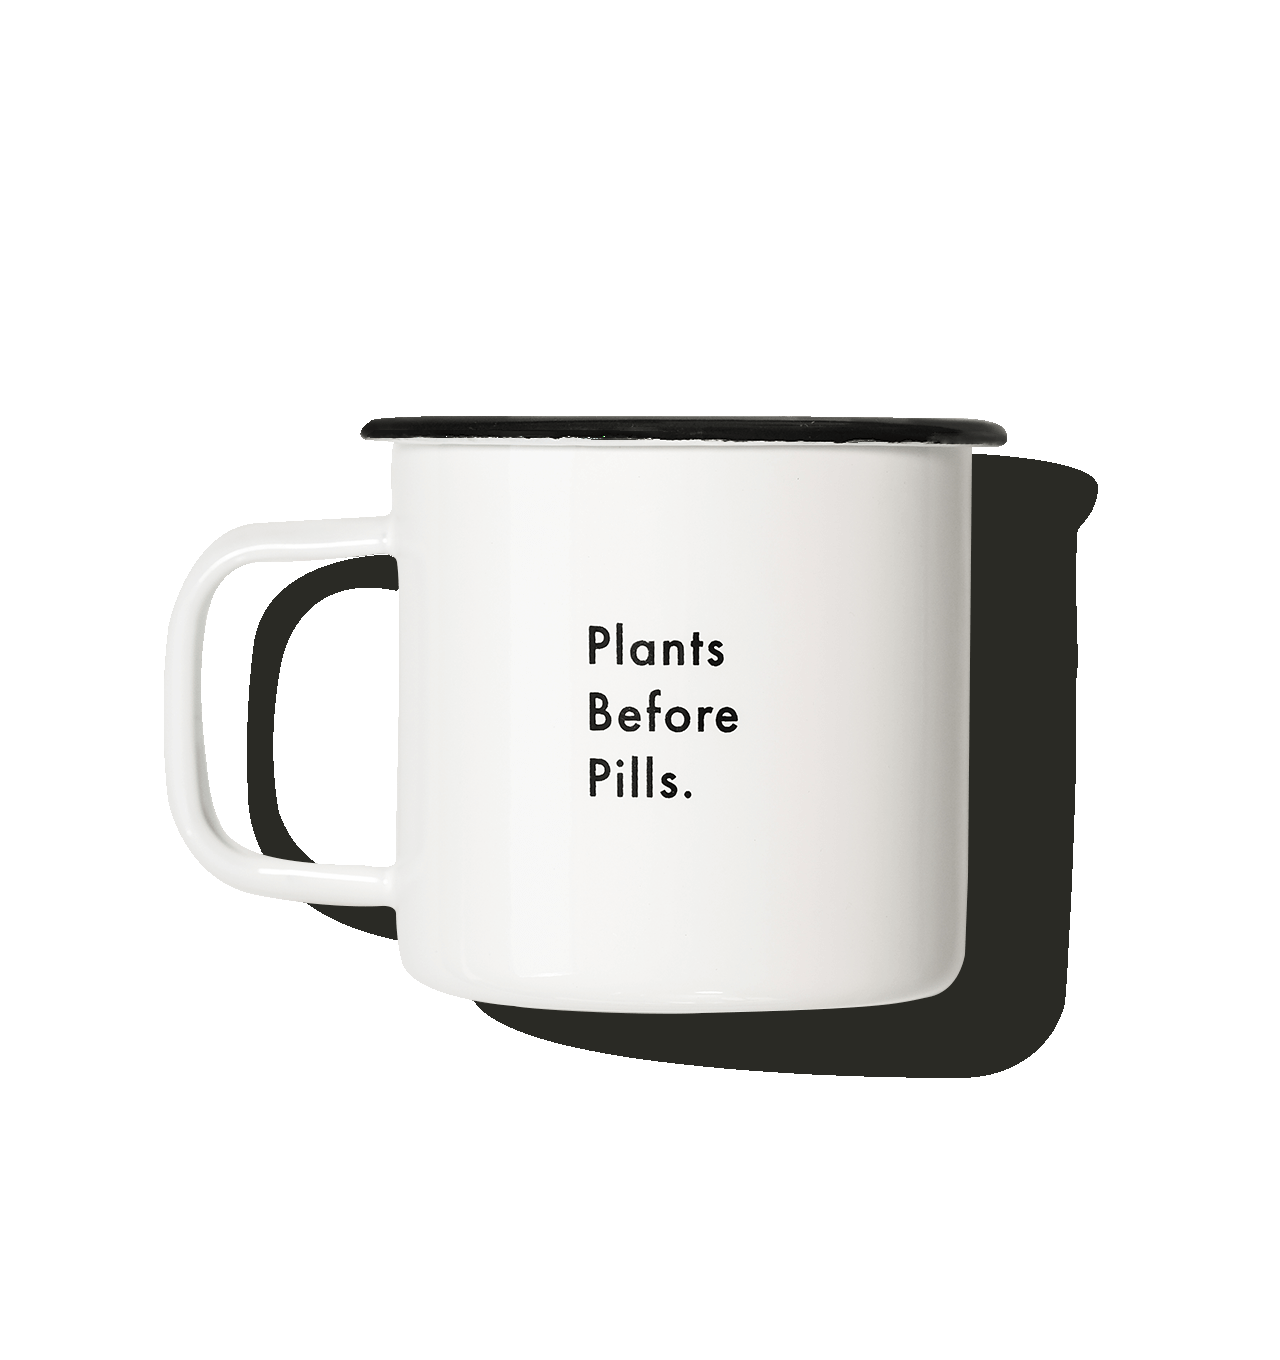 Plants Before Pills Mug